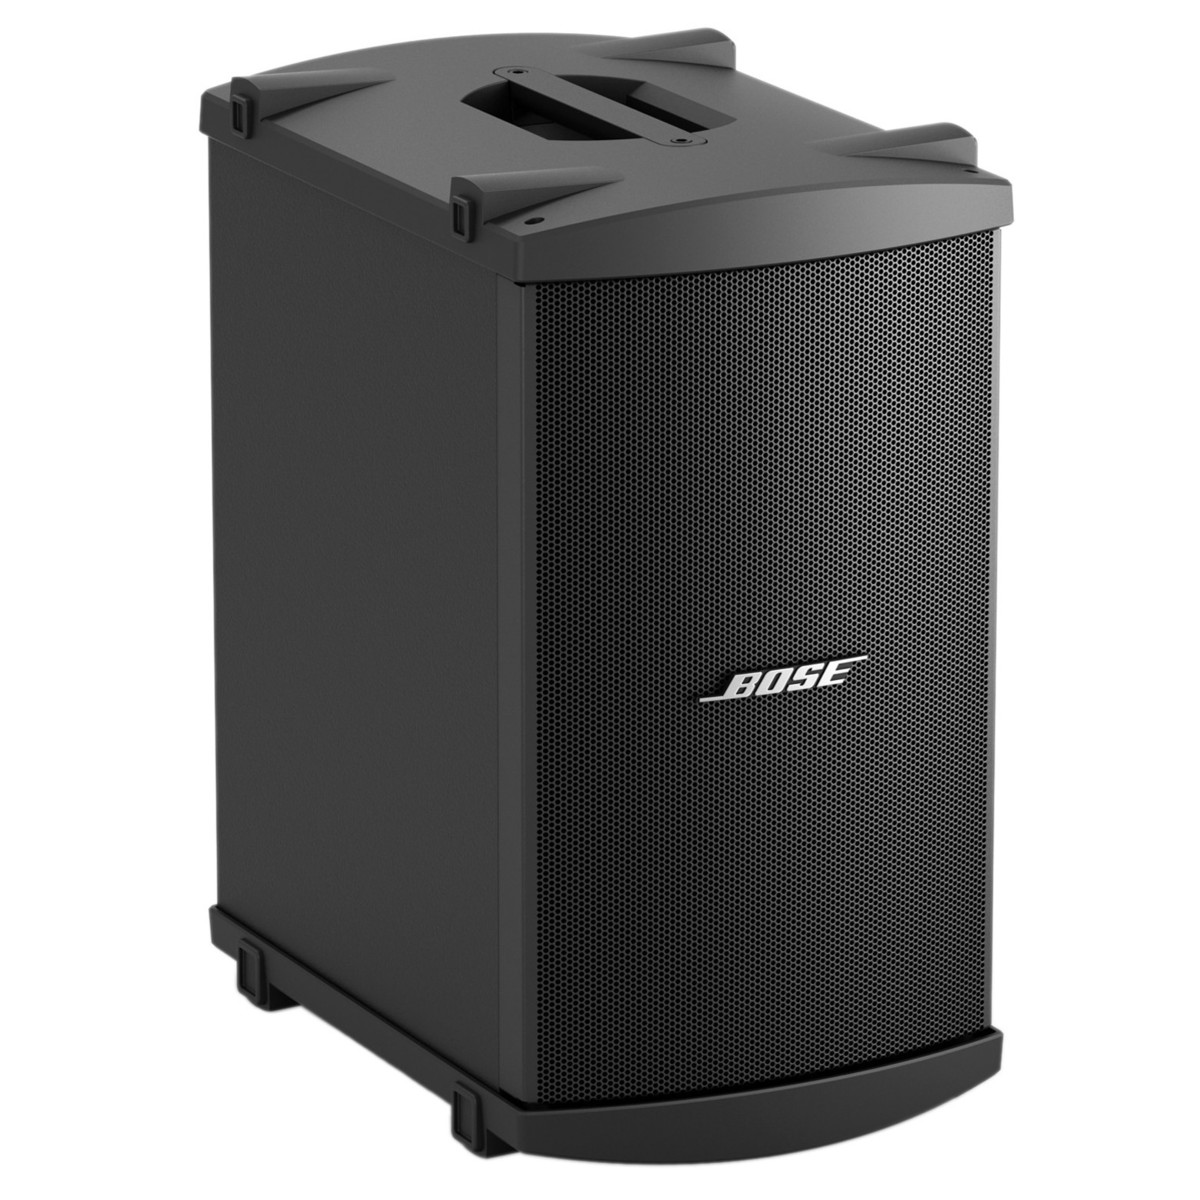 bose l1 model 1s system with b2 bass module at. Black Bedroom Furniture Sets. Home Design Ideas